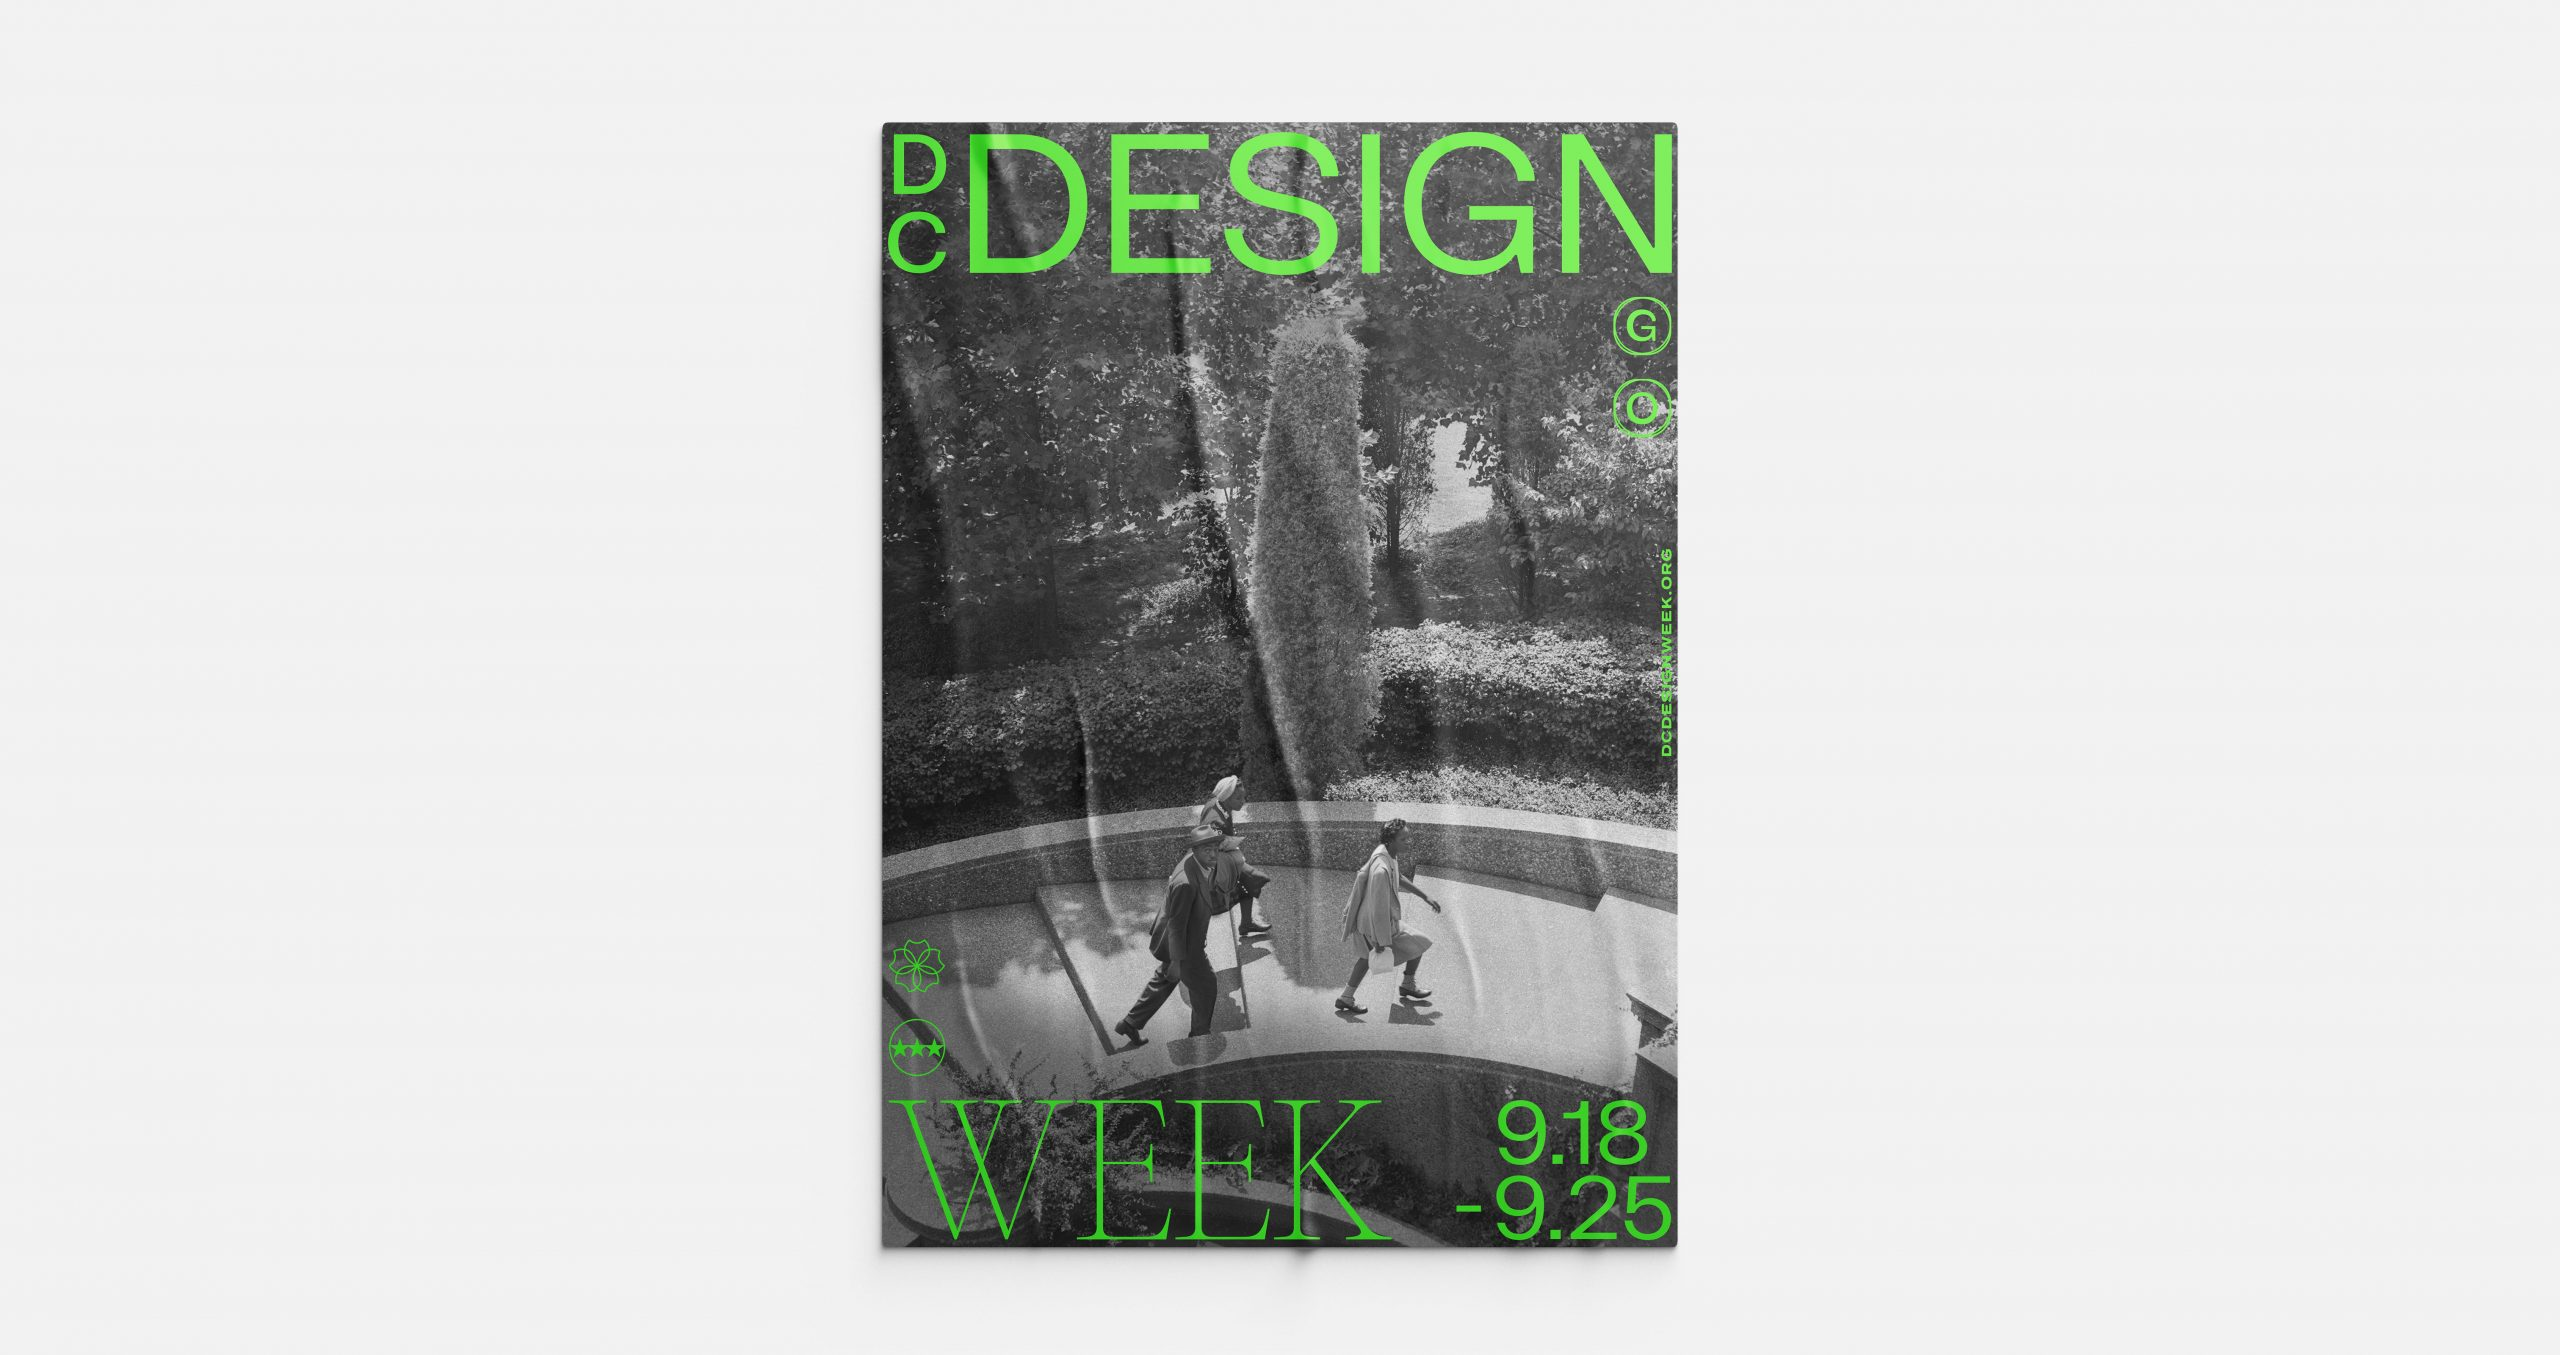 Brand identity and art direction for DC Design Week by January Third